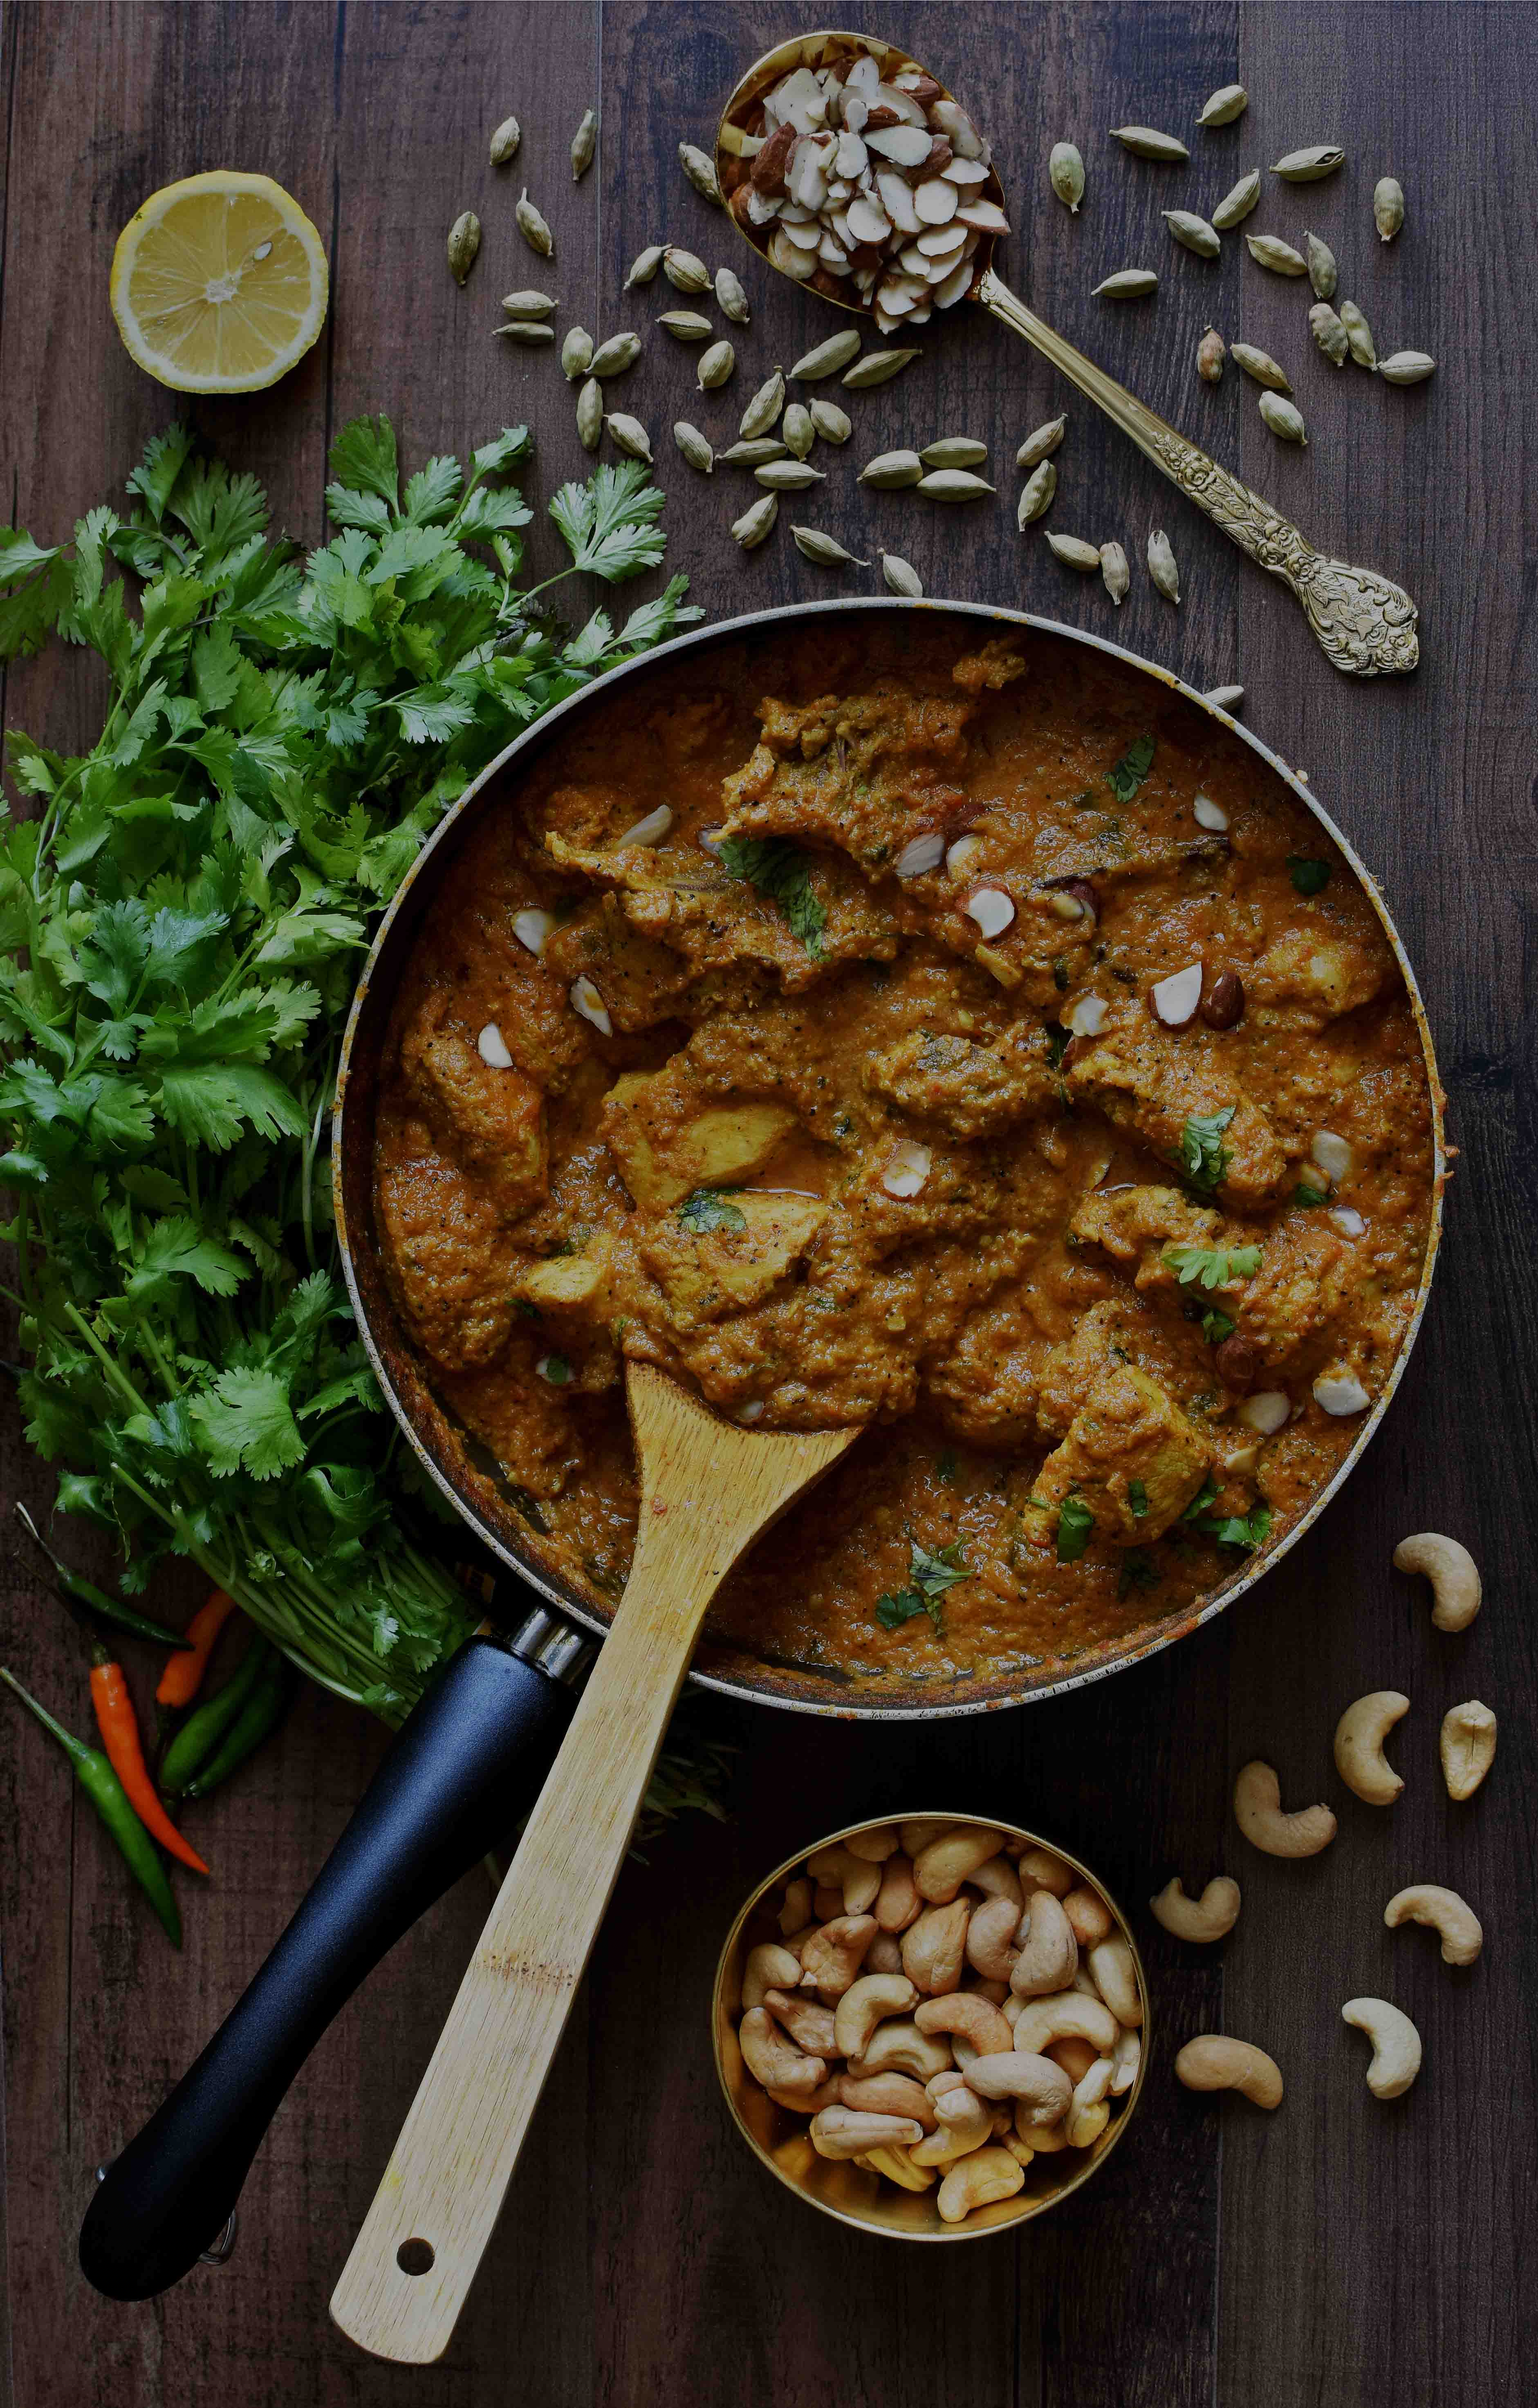 Mughlai Chicken Curry - Pepper Delight #pepperdelightblog #recipe #indianrecipes #mughlai #chickencurry #mughlairecipes